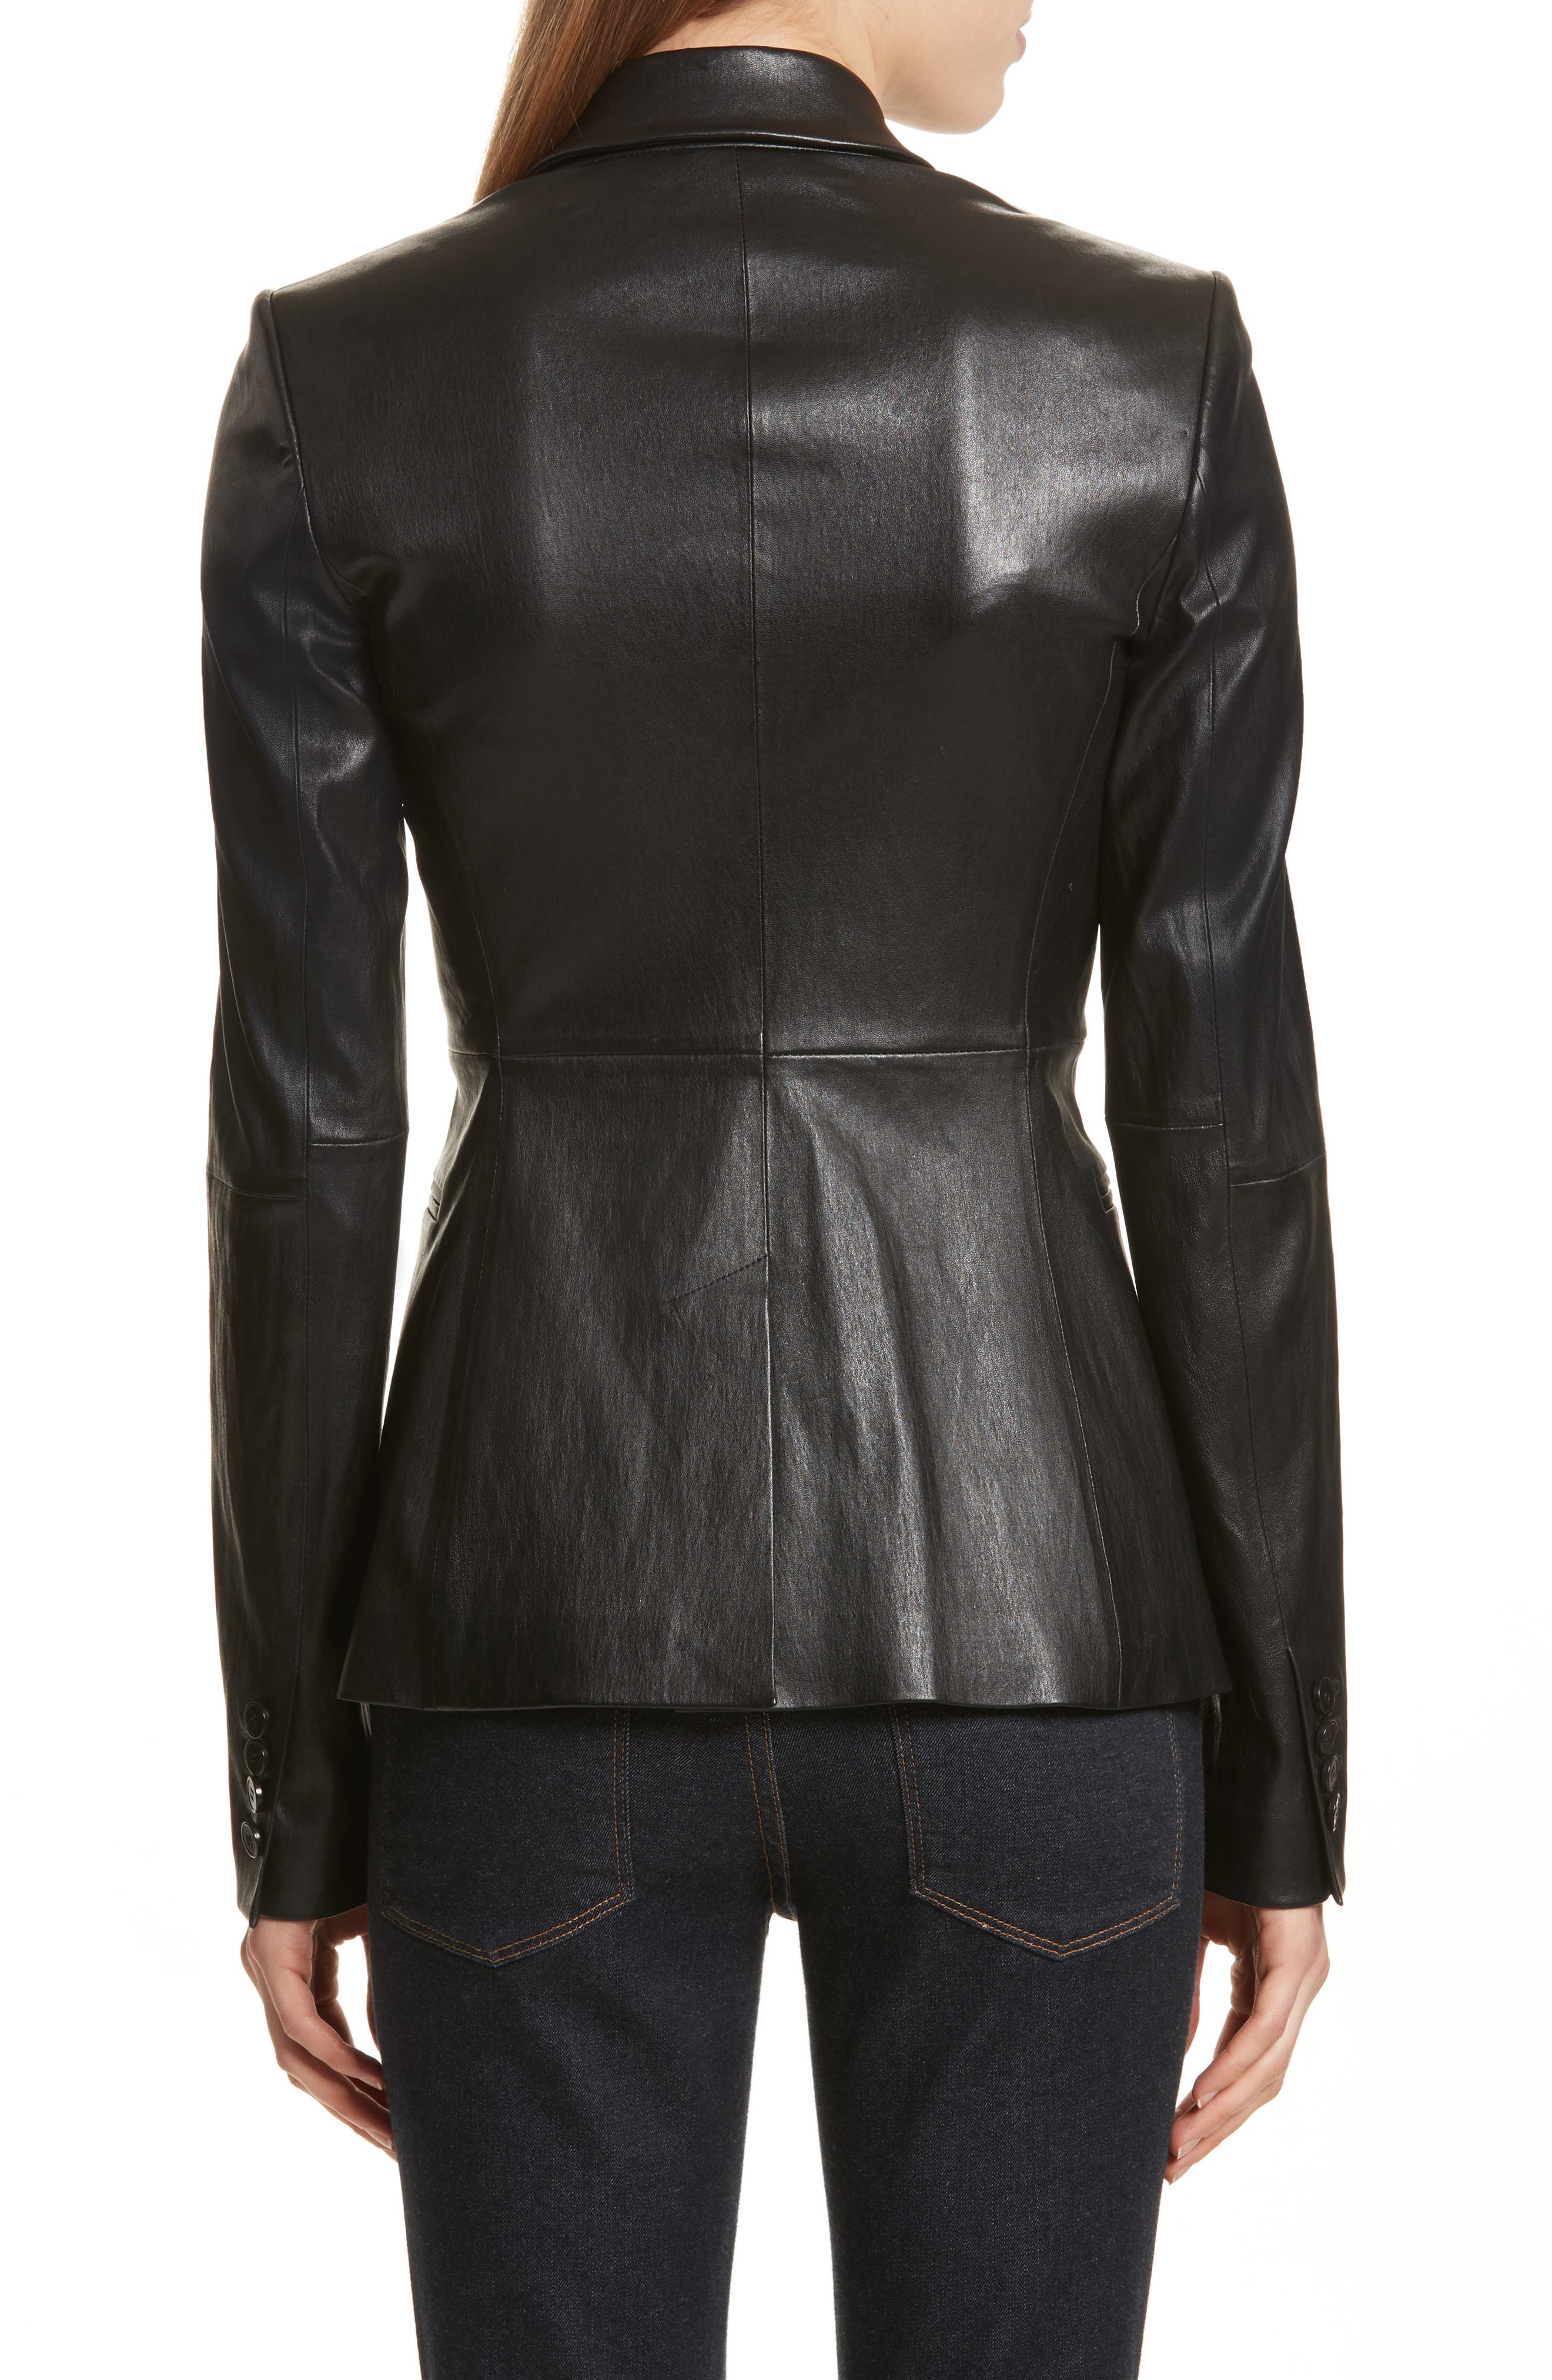 Bristol Leather Blazer,                             Alternate thumbnail 2, color,                             Black